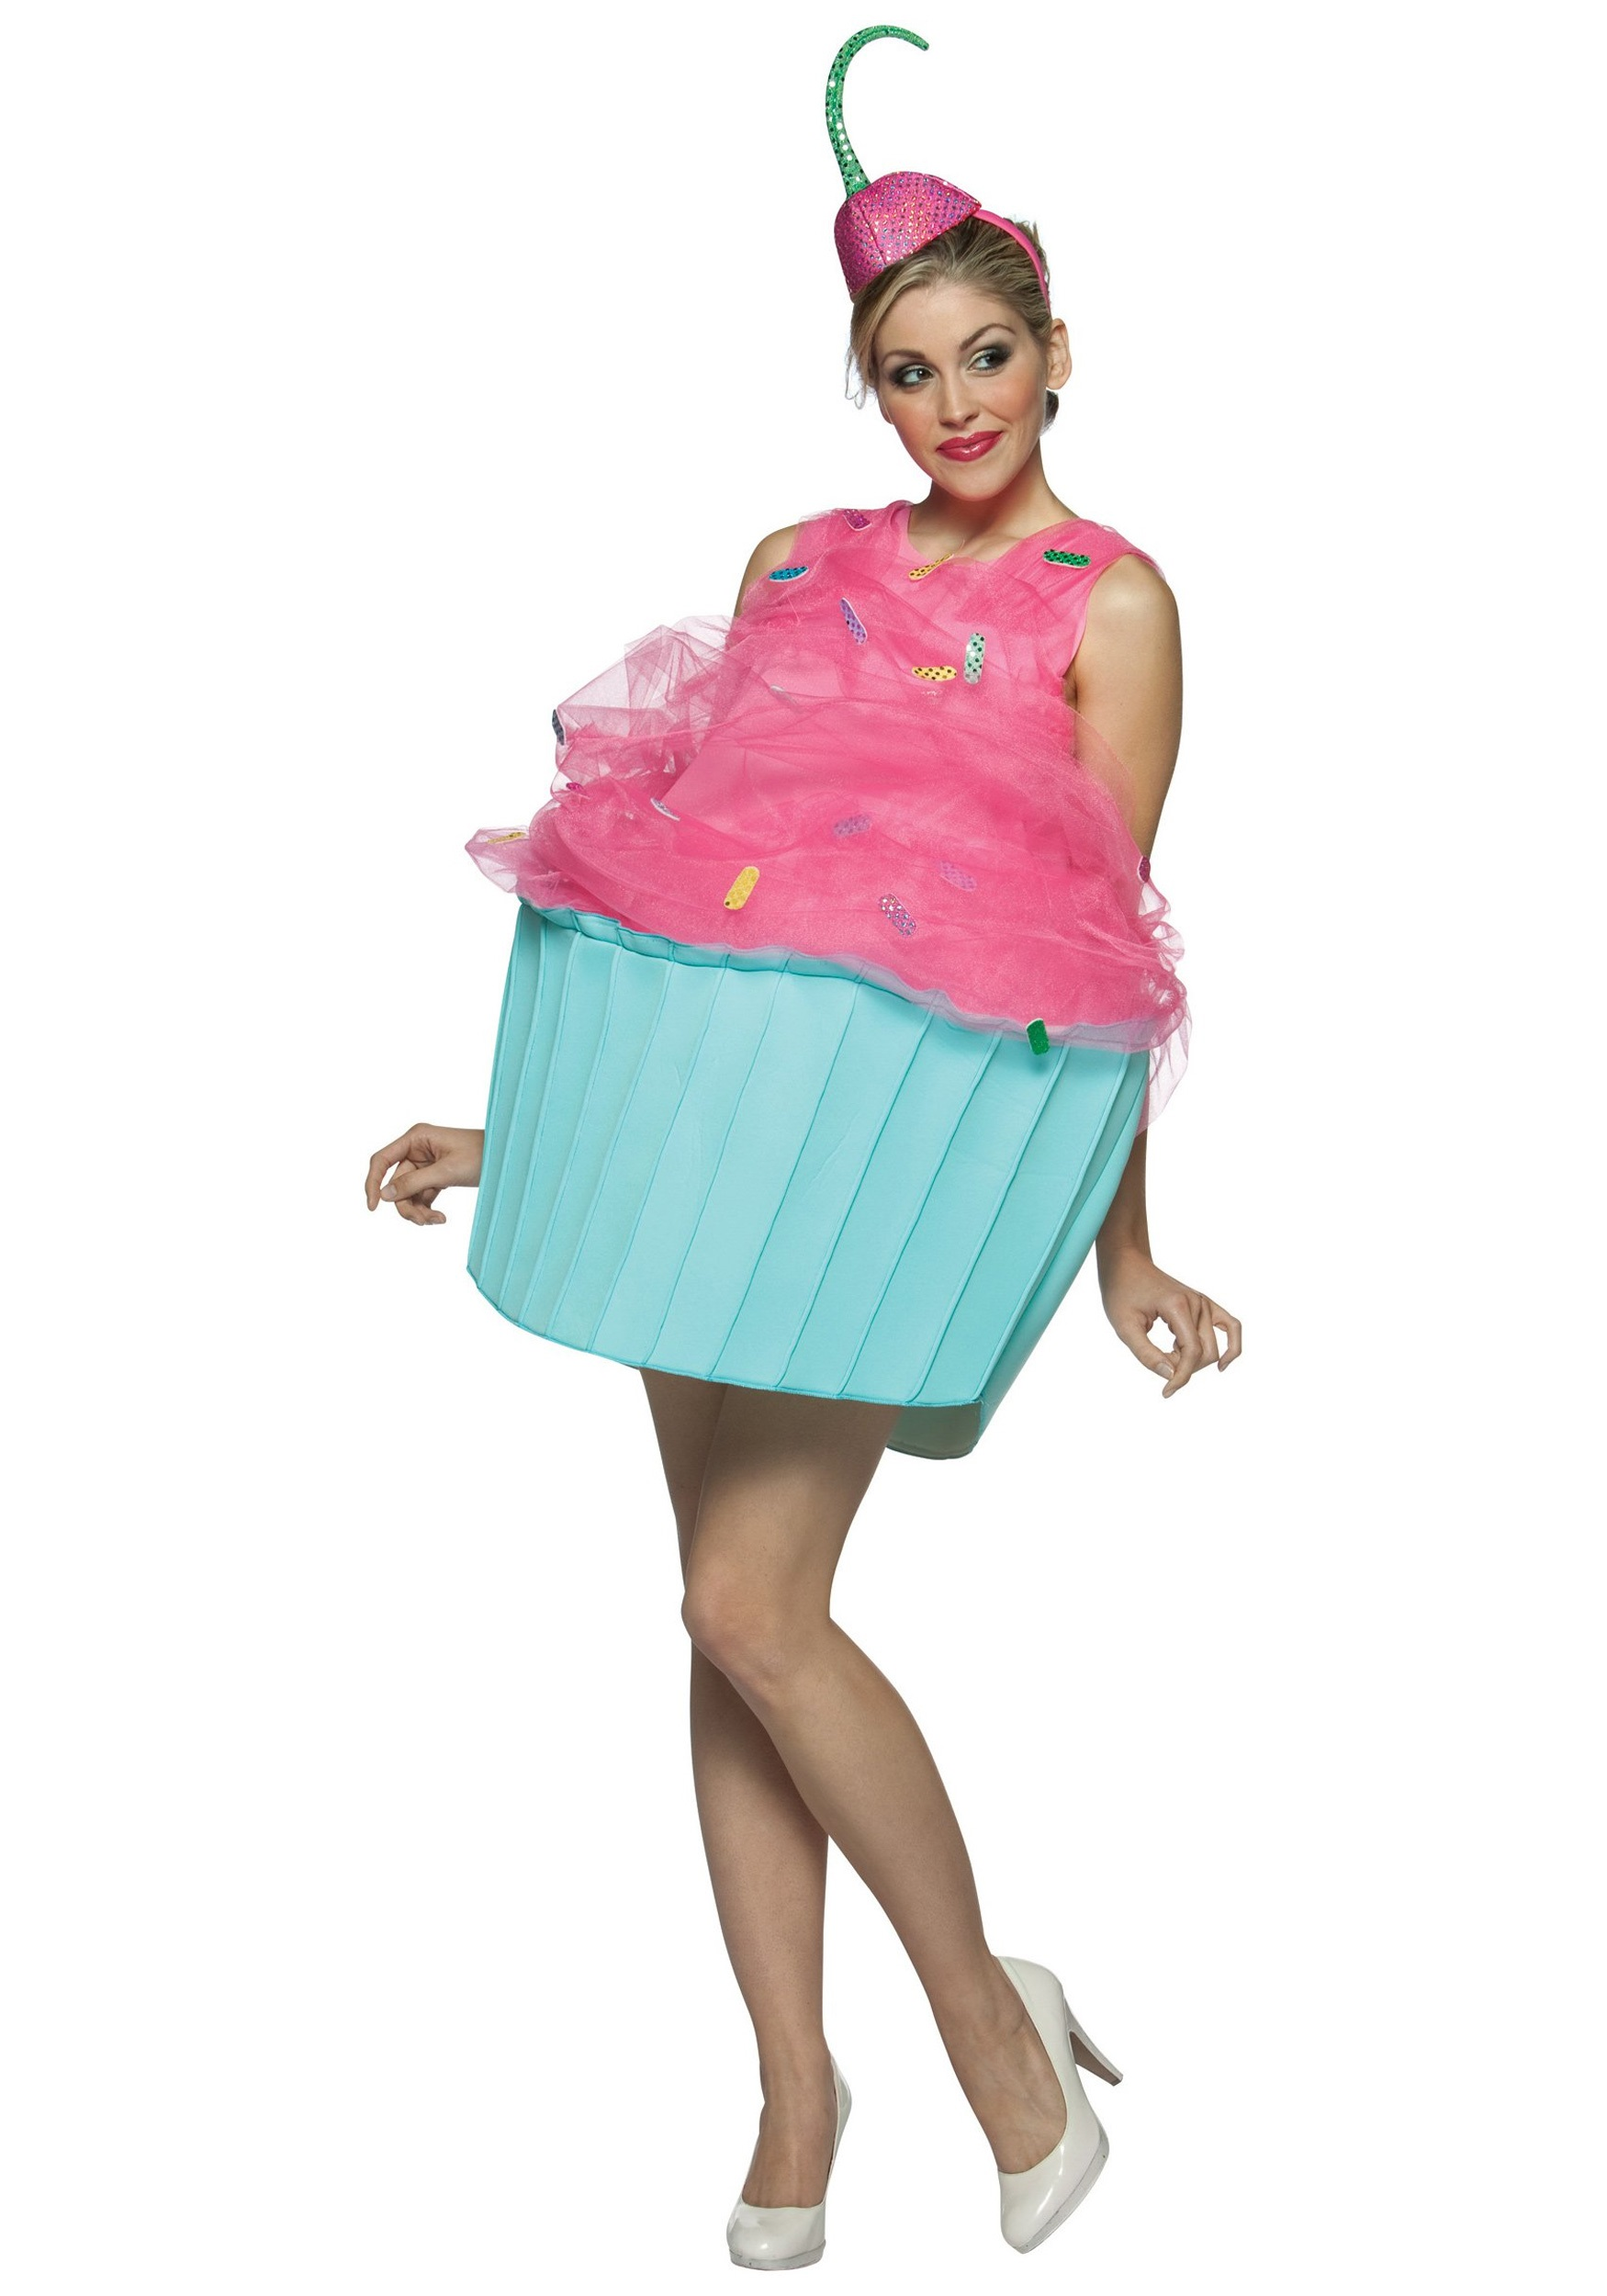 Cupcake  sc 1 st  Event.Snydle & Halloween Costume Ideas For Women For 2017 - Festival Around the World